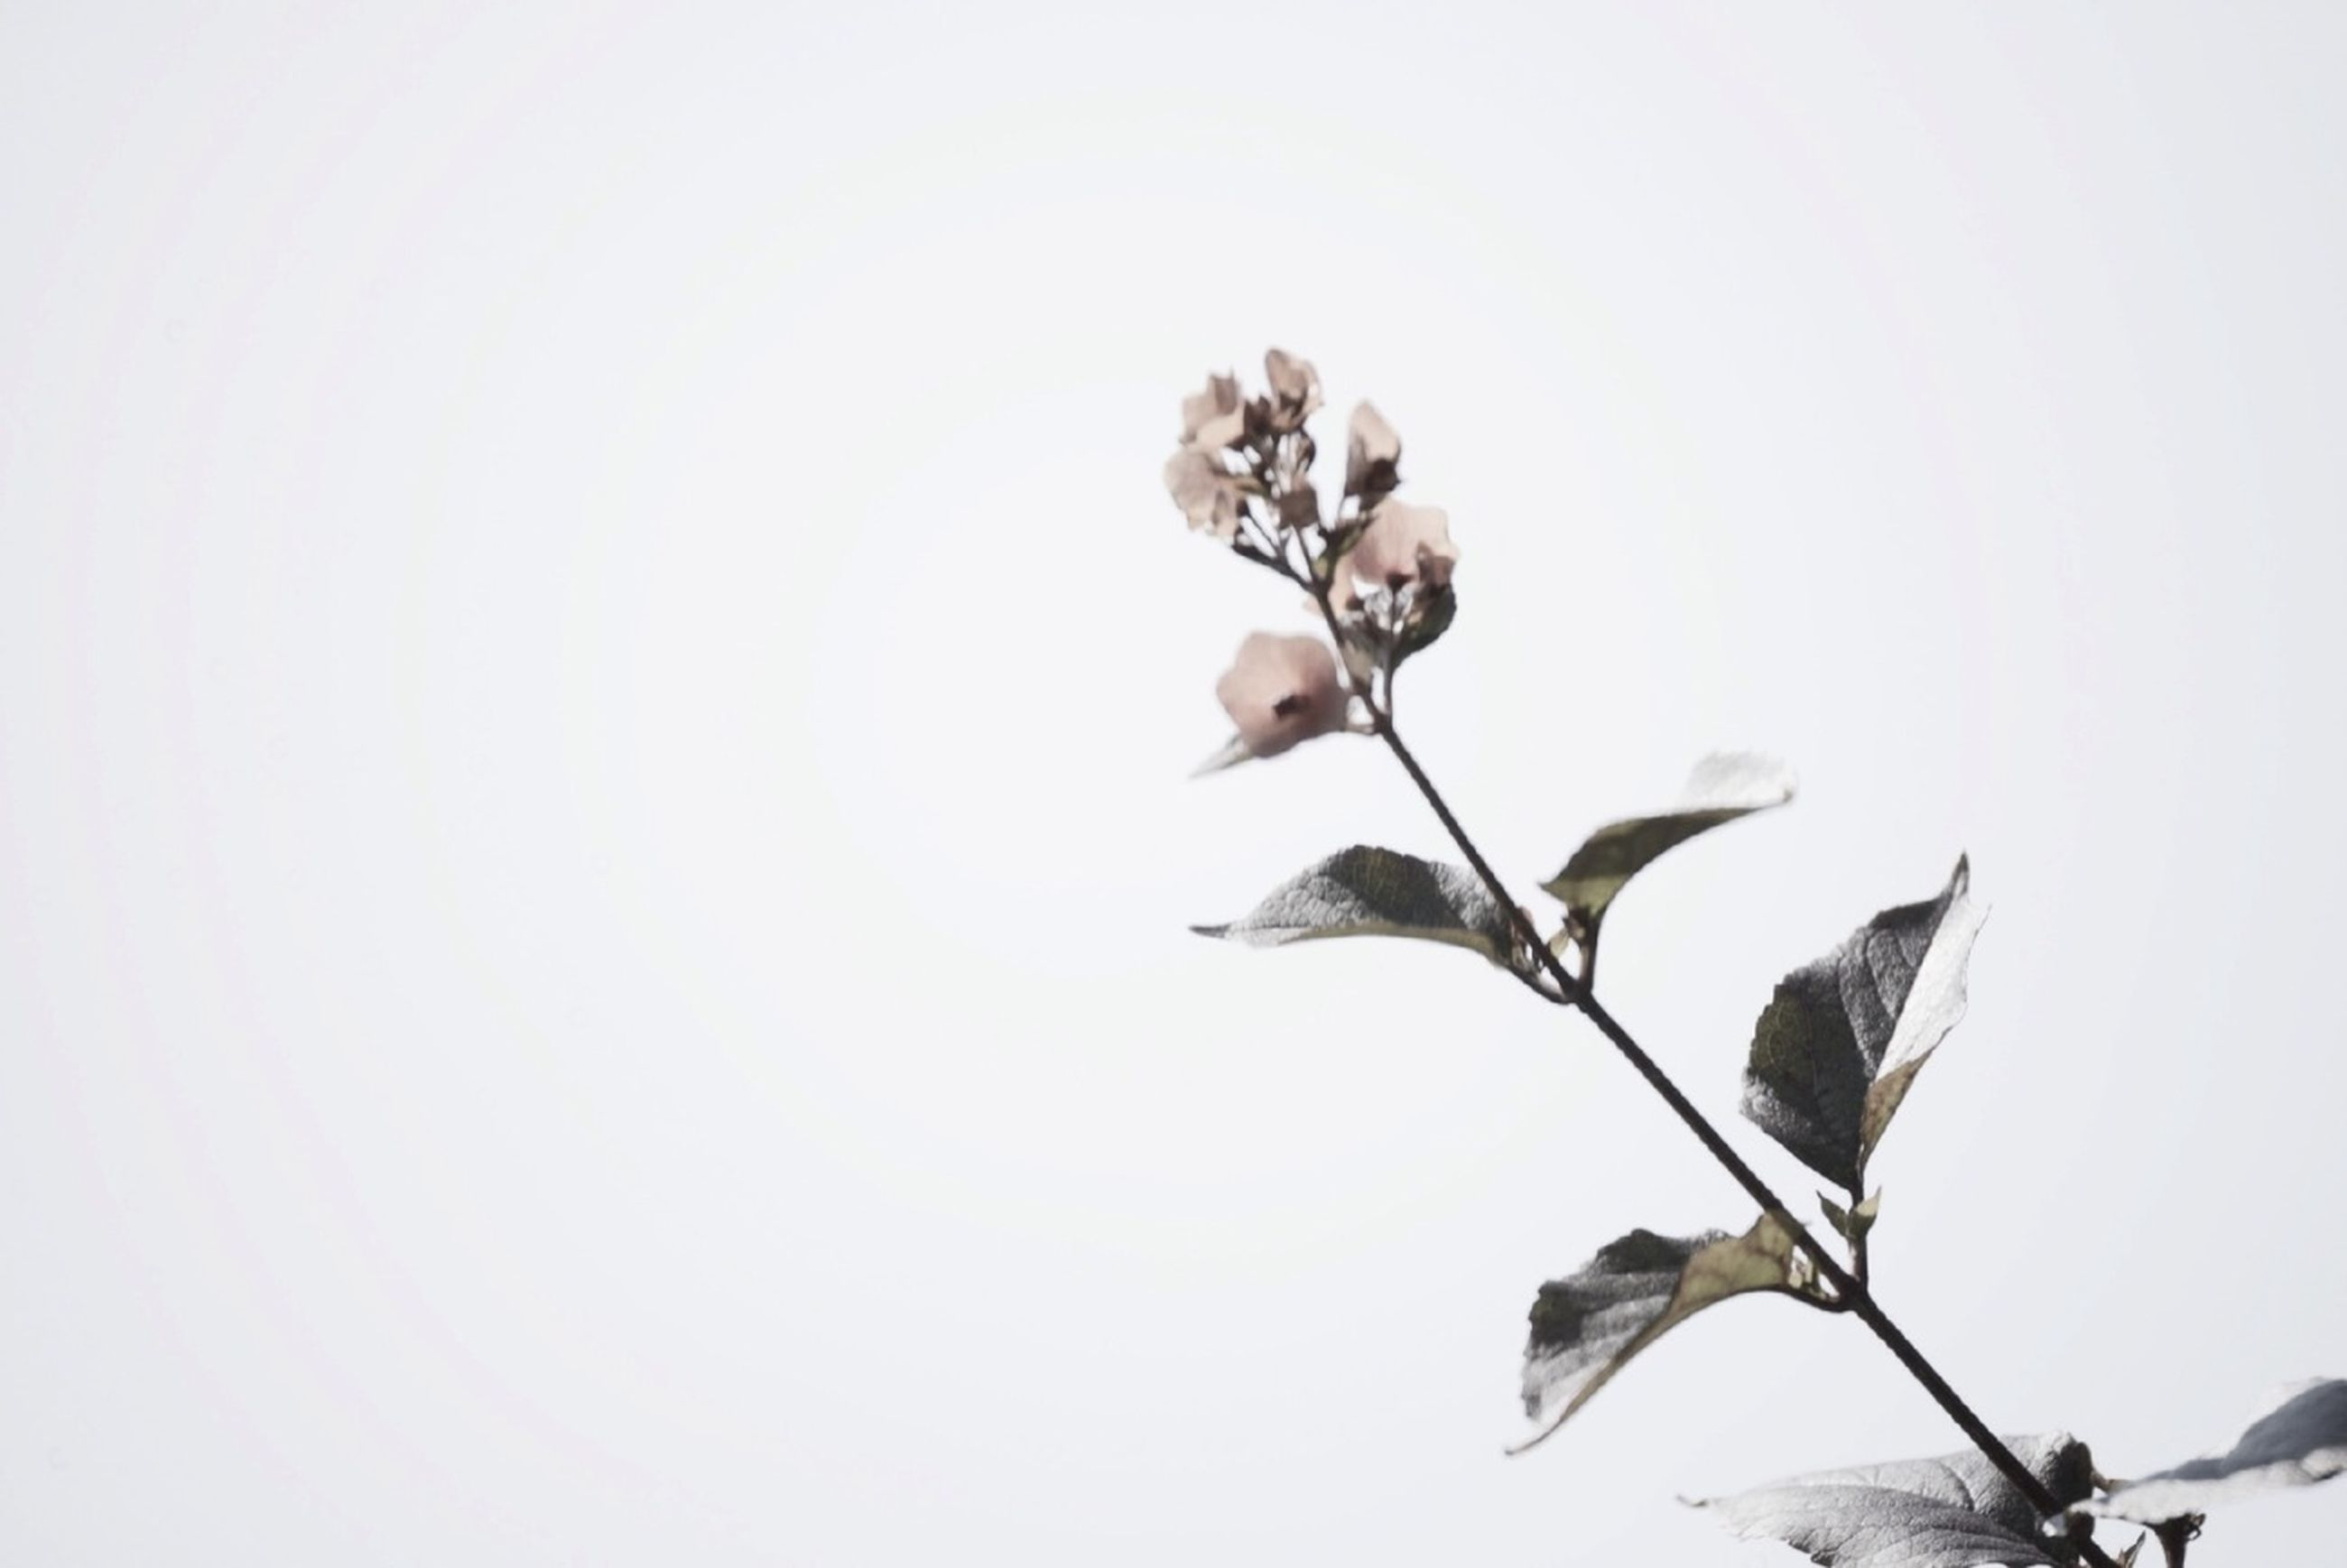 clear sky, low angle view, copy space, leaf, growth, nature, branch, plant, beauty in nature, flower, white background, stem, fragility, twig, close-up, day, no people, studio shot, tree, outdoors